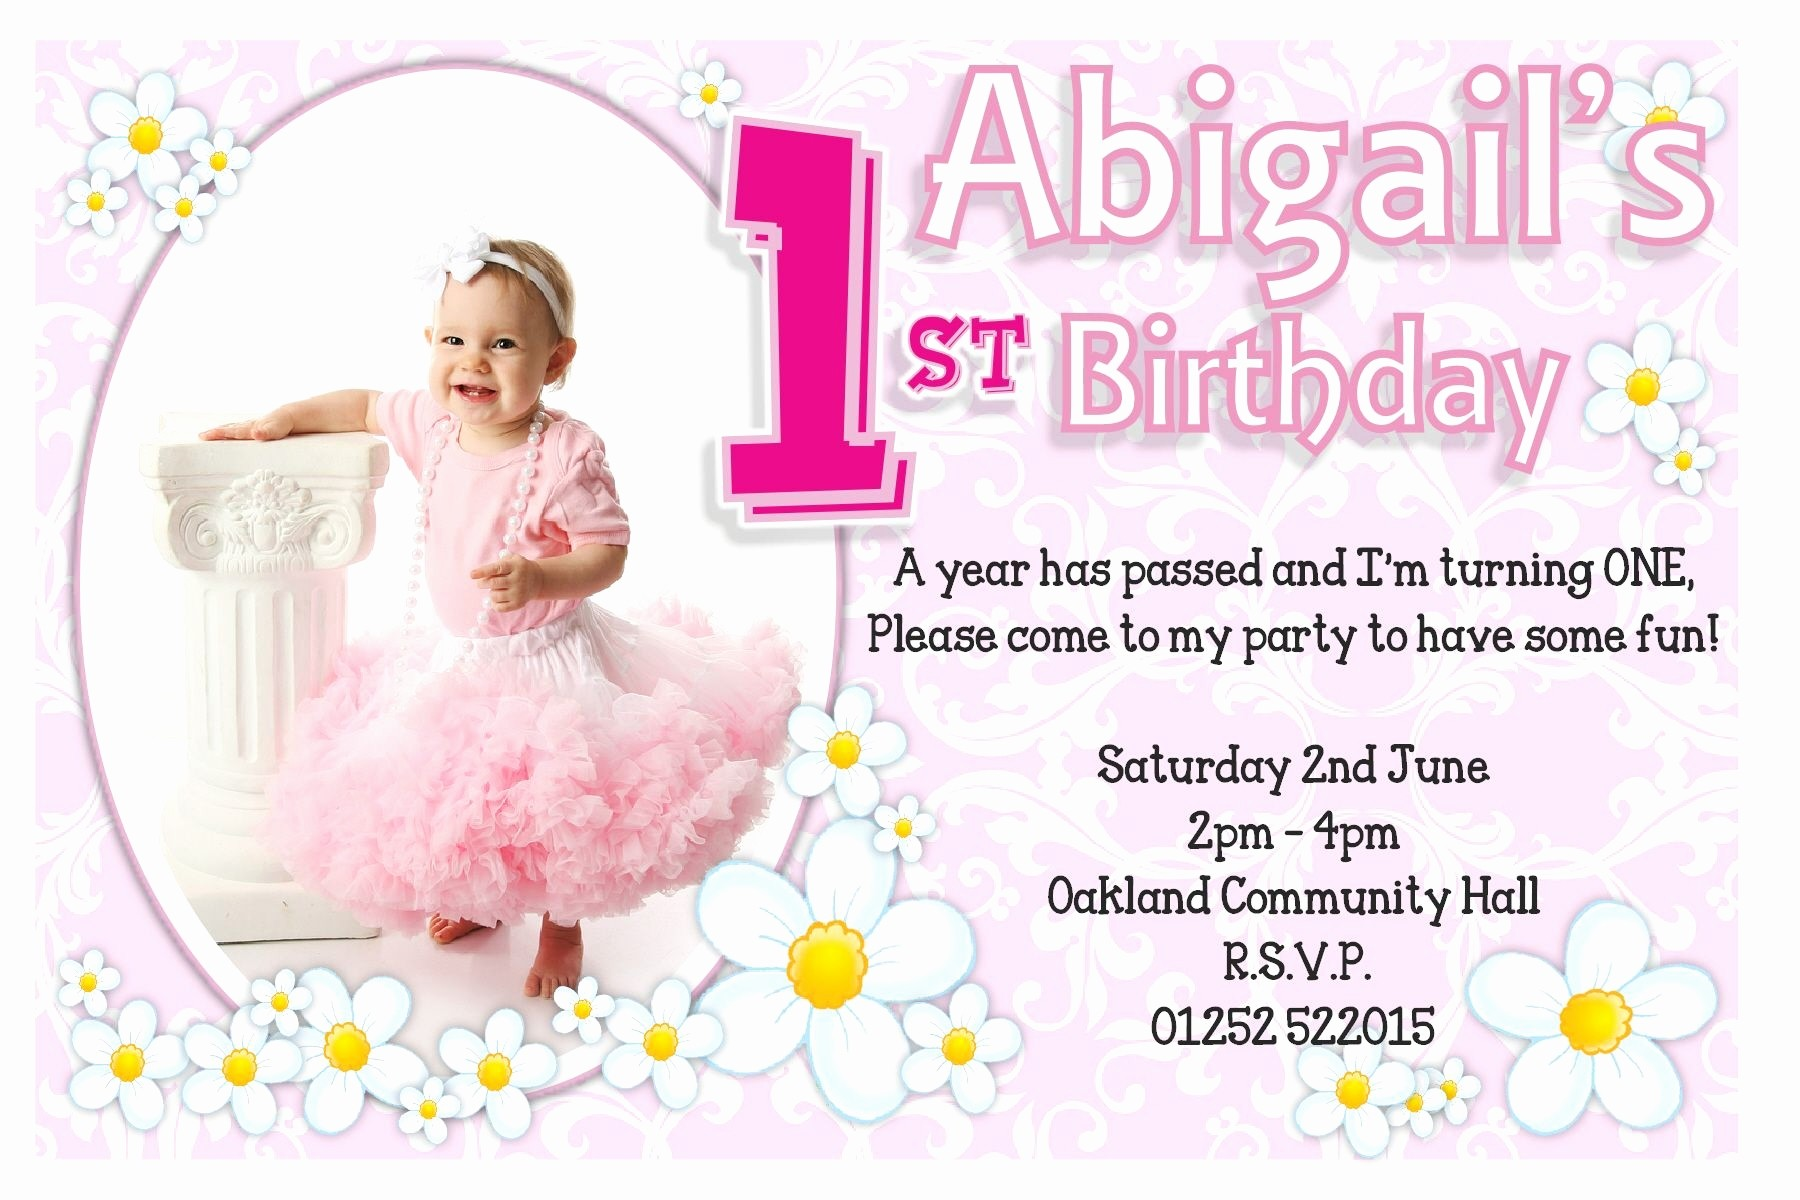 1st birthday invitation cards for daughter ; invitation-for-birthday-of-daughter-best-birthday-card-for-my-daughter-new-1st-birthday-invitations-girl-of-invitation-for-birthday-of-daughter